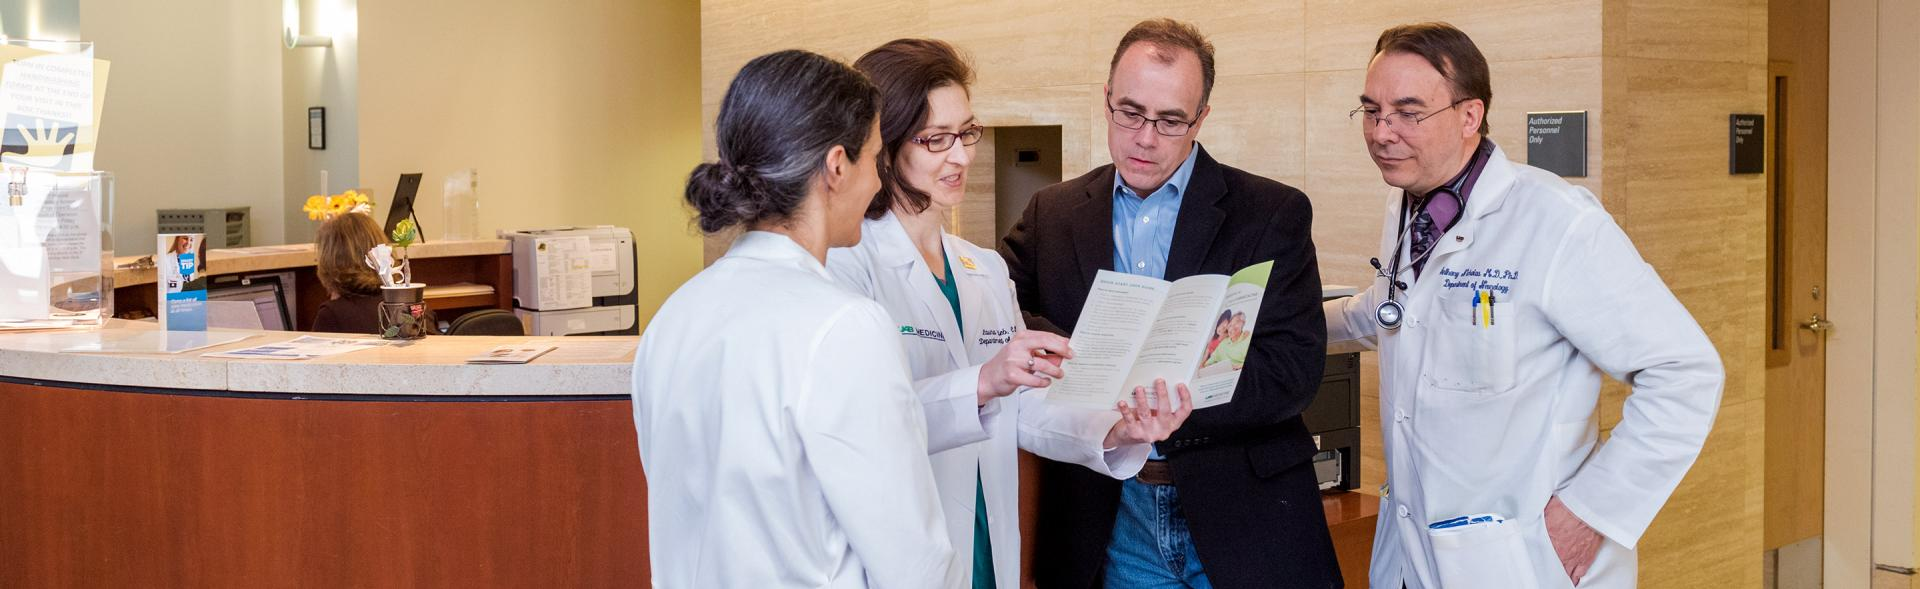 Male patient in doctor's office standing with three doctors looking at a brochure.